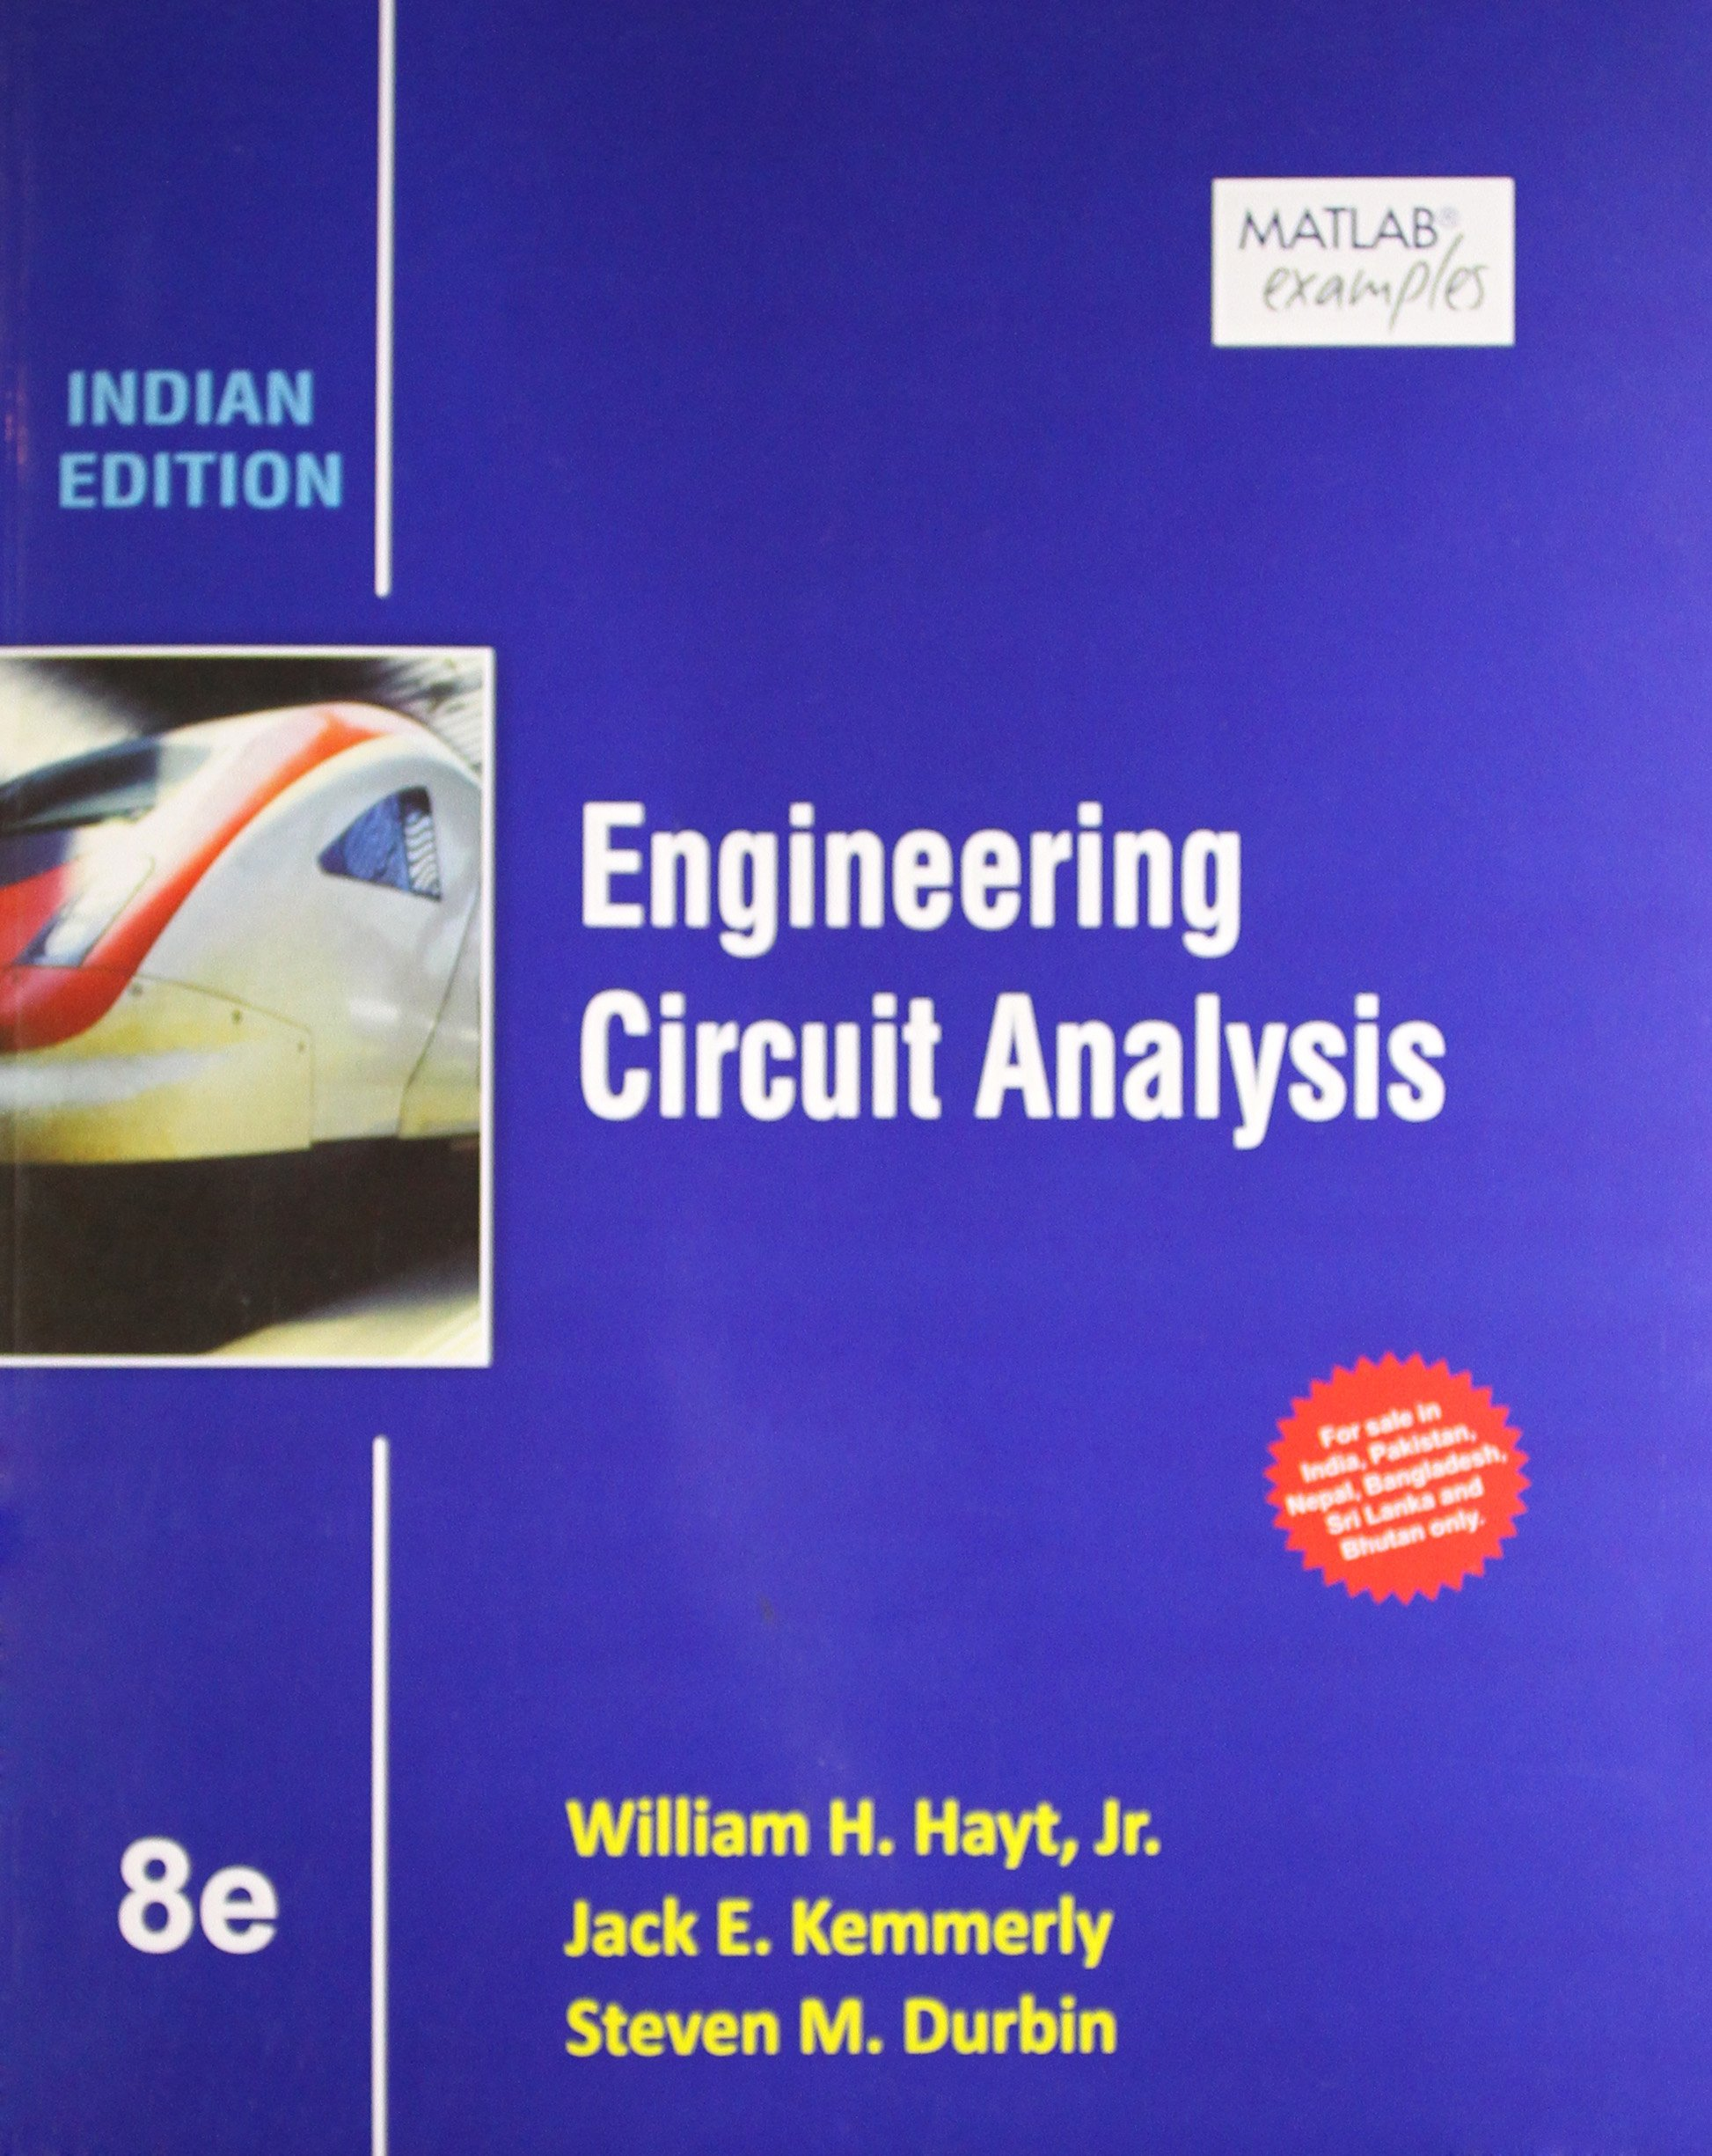 buy engineering circuit analysis book online at low prices in indiaengineering circuit analysis paperback \u2013 4 aug 2013 by william h hayt